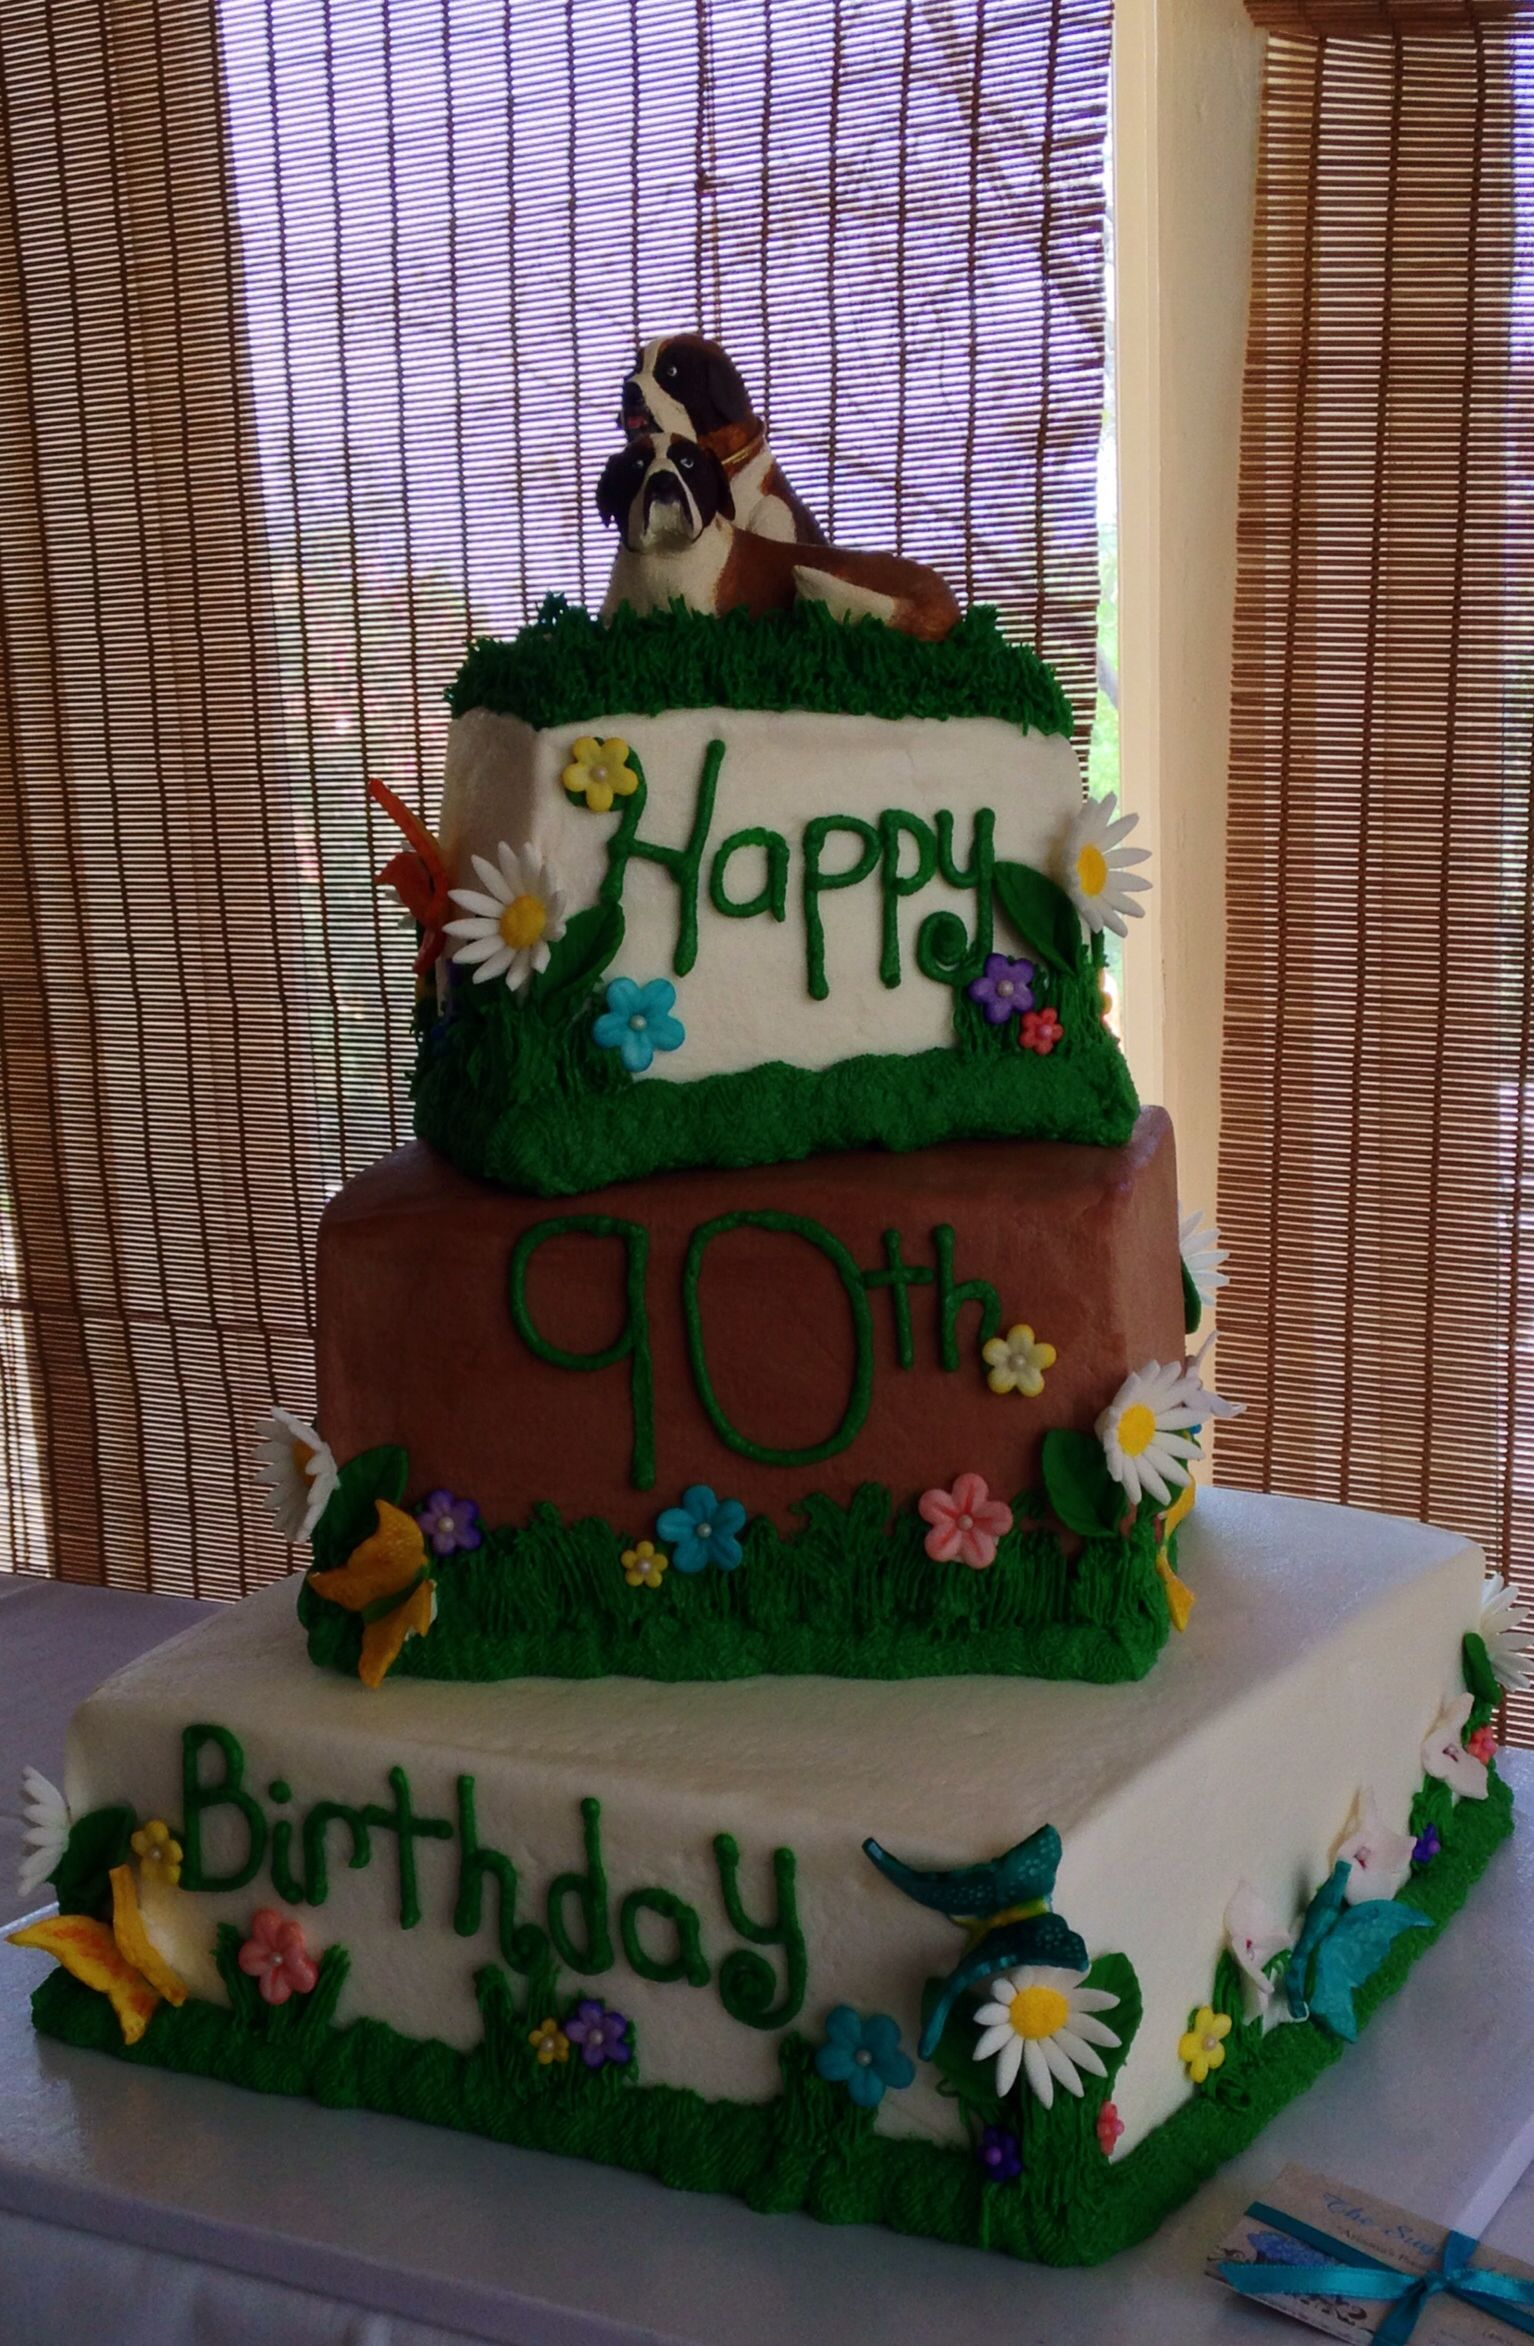 Springtime Cake with St Bernards for a 90th birthday party hosted